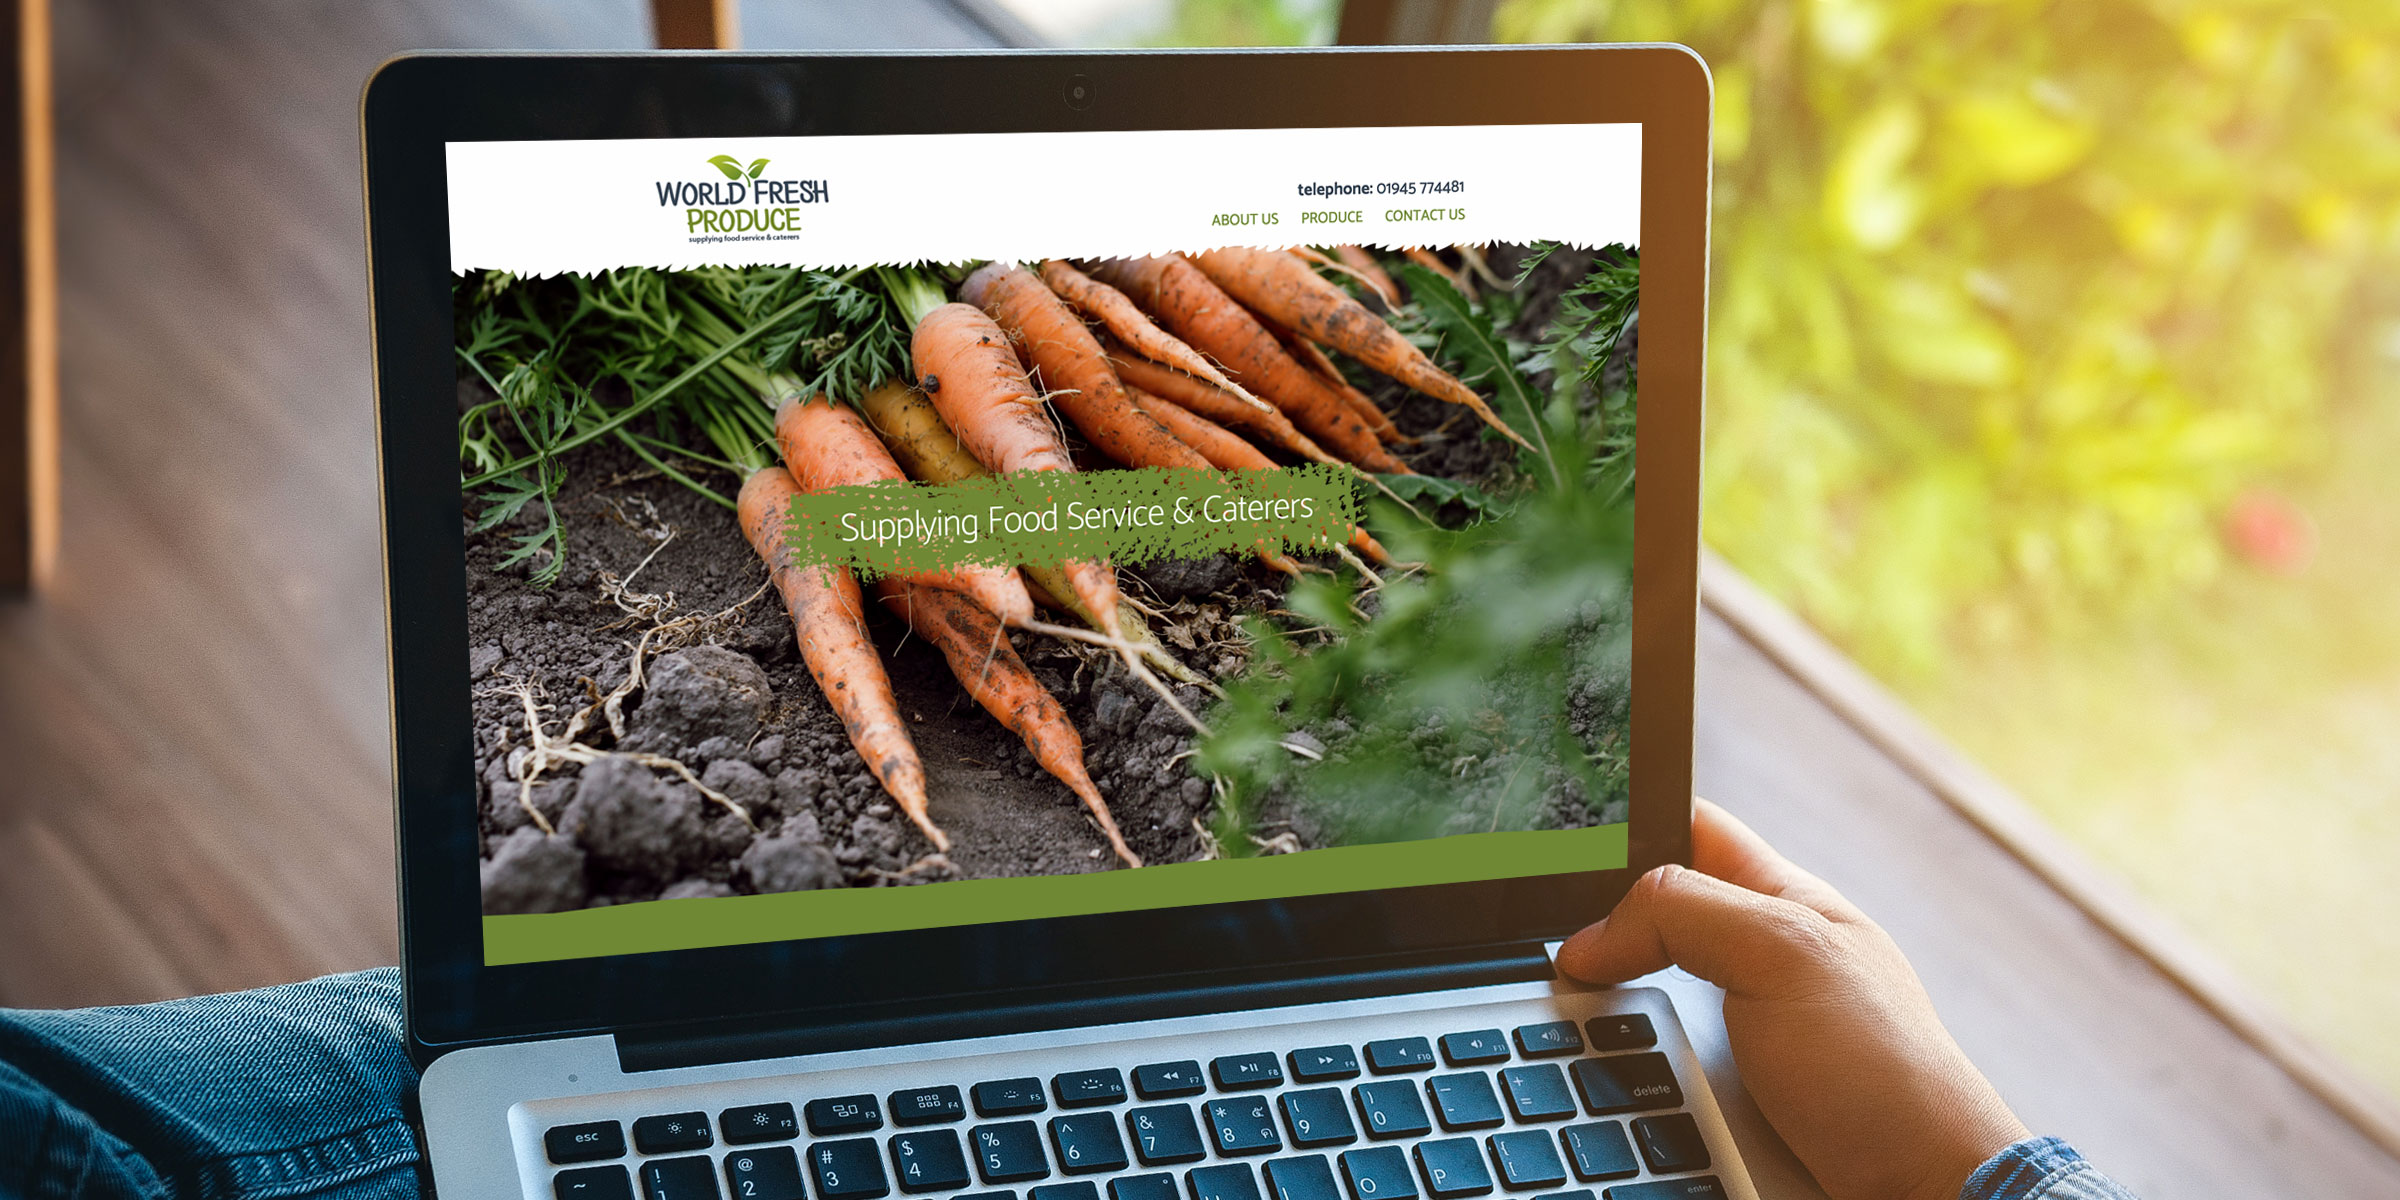 World Fresh Produce Website